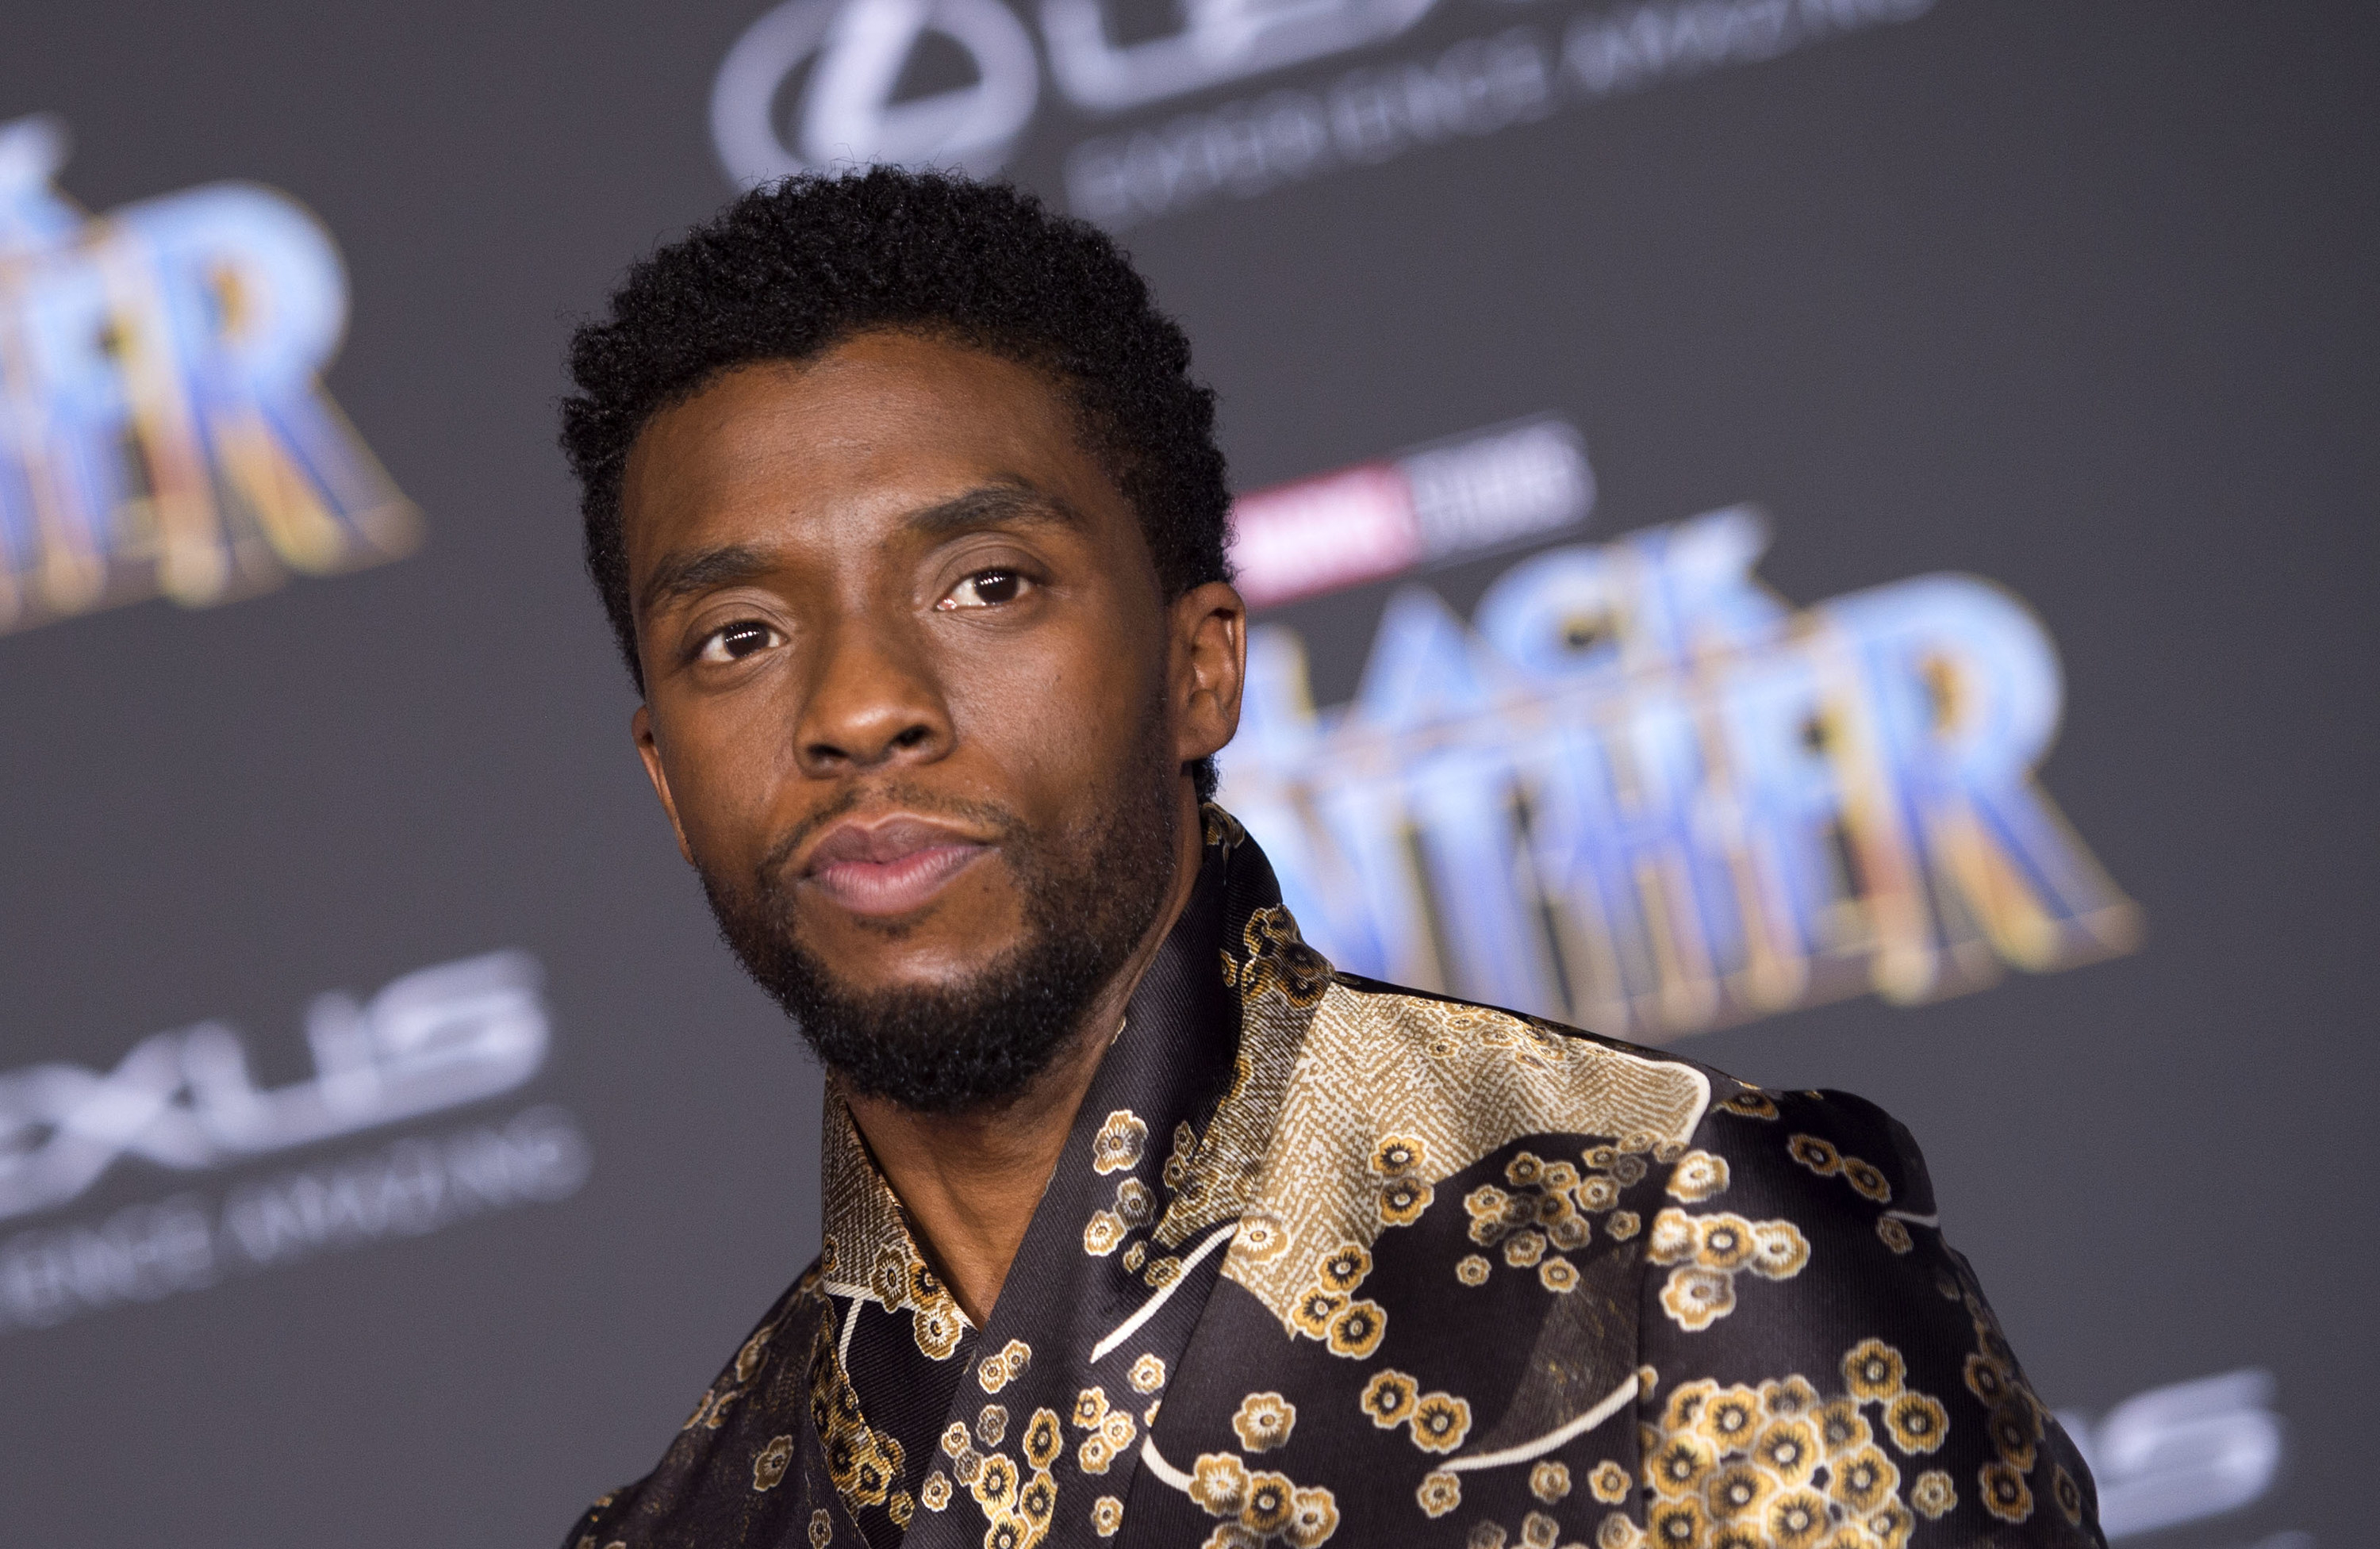 Chadwick Boseman attends the world premiere of Marvel Studios Black Panther